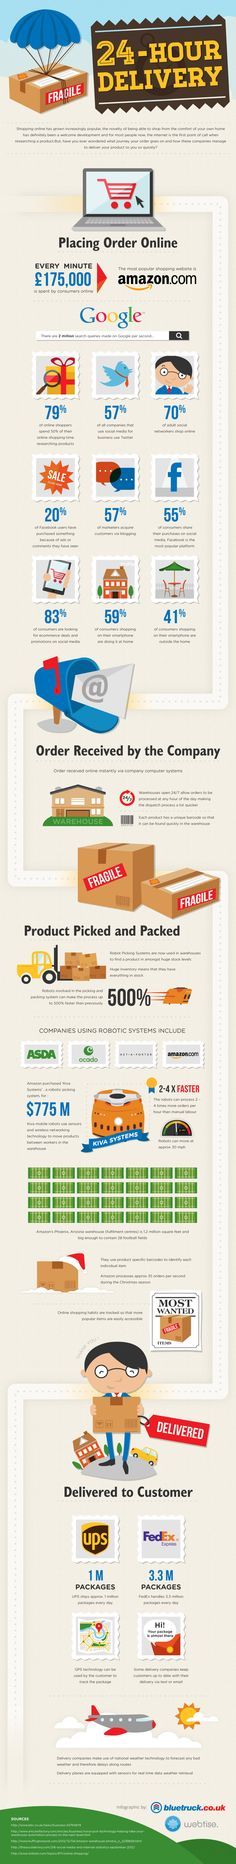 24hour delivery - See how it can be accomplished #eCommerce #Infographic